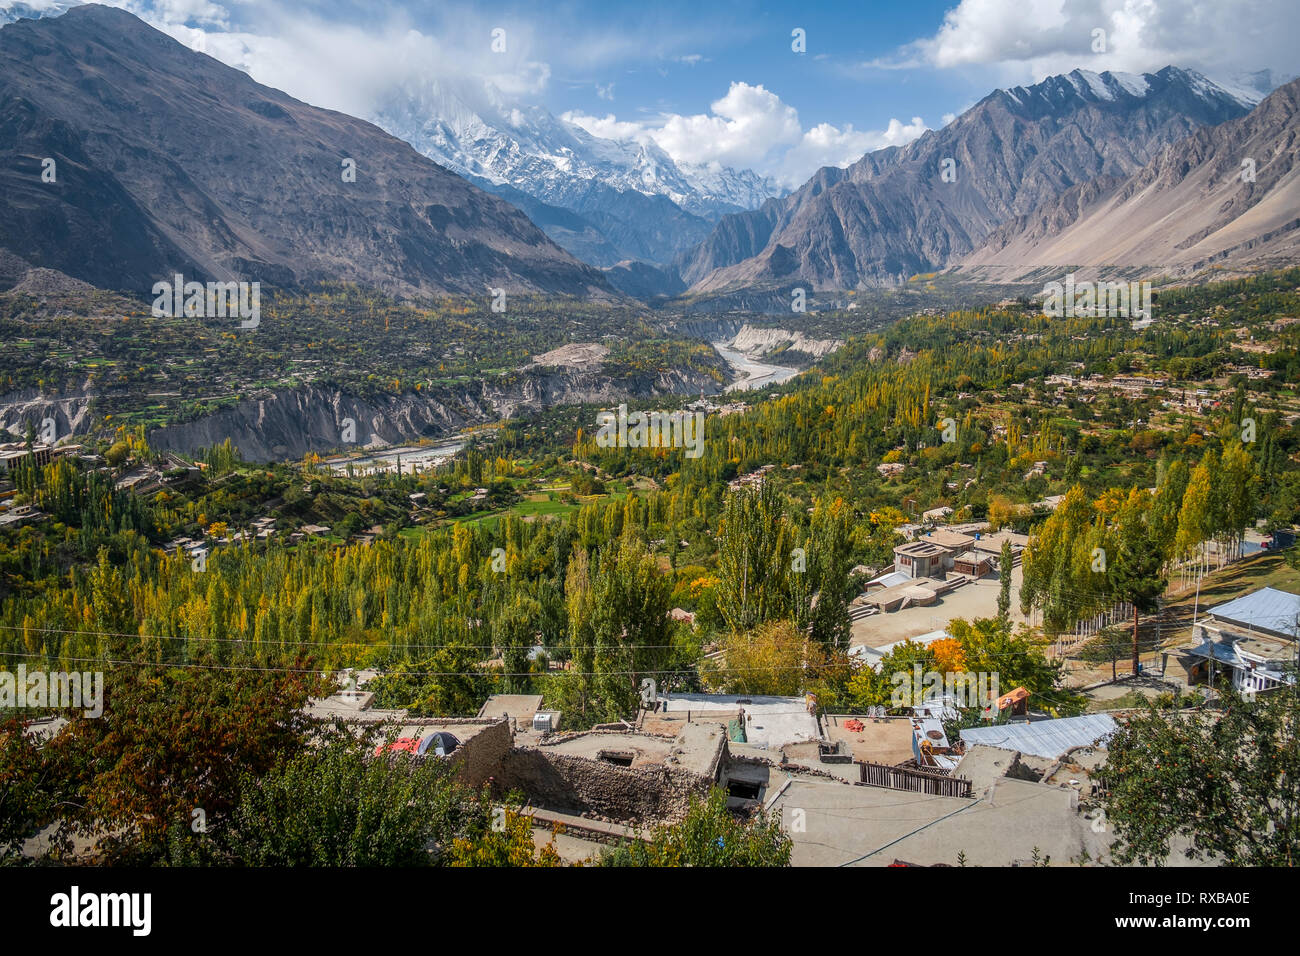 Landscape of peaceful Hunza Nagar valley in autumn with a view of snow capped Rakaposhi mountain in Karakoram range. Gilgit Baltistan, Pakistan. - Stock Image